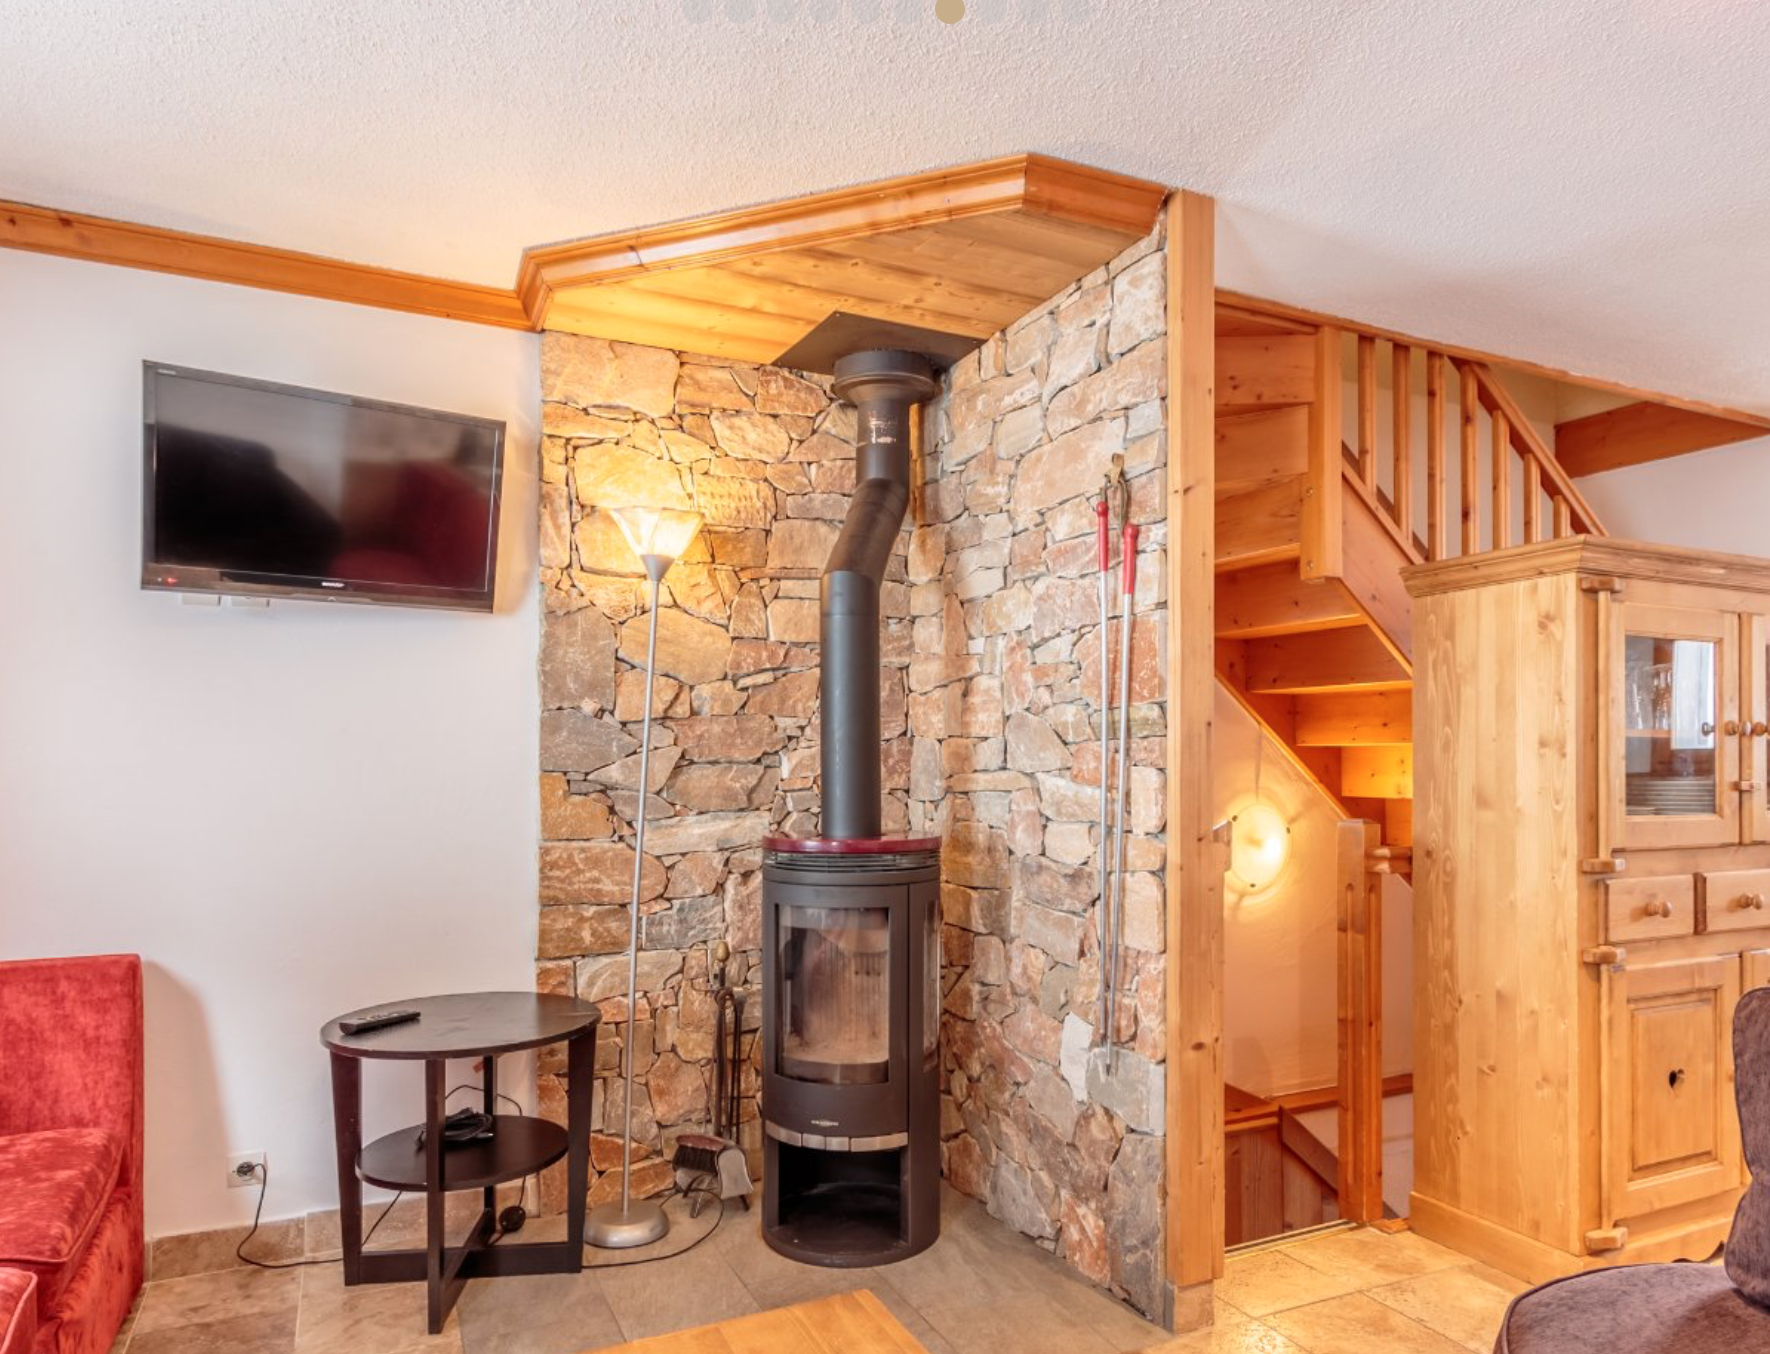 Traditional Semi-Detached Chalet